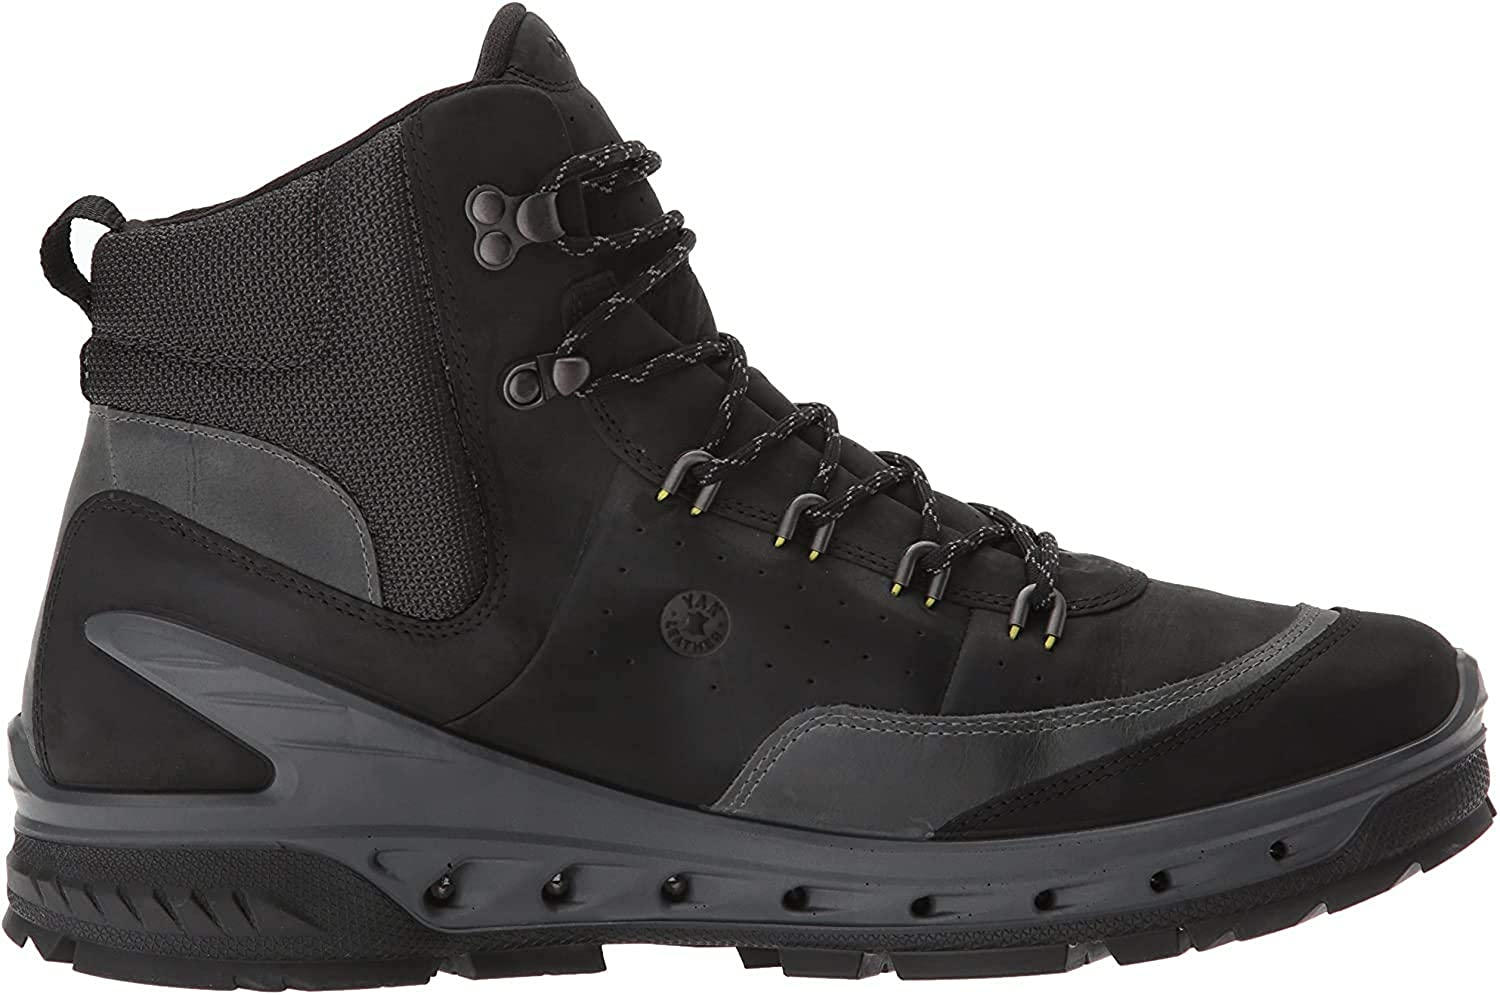 ECCO Men s High Rise Hiking Shoes, Black Dark Shadow 56340